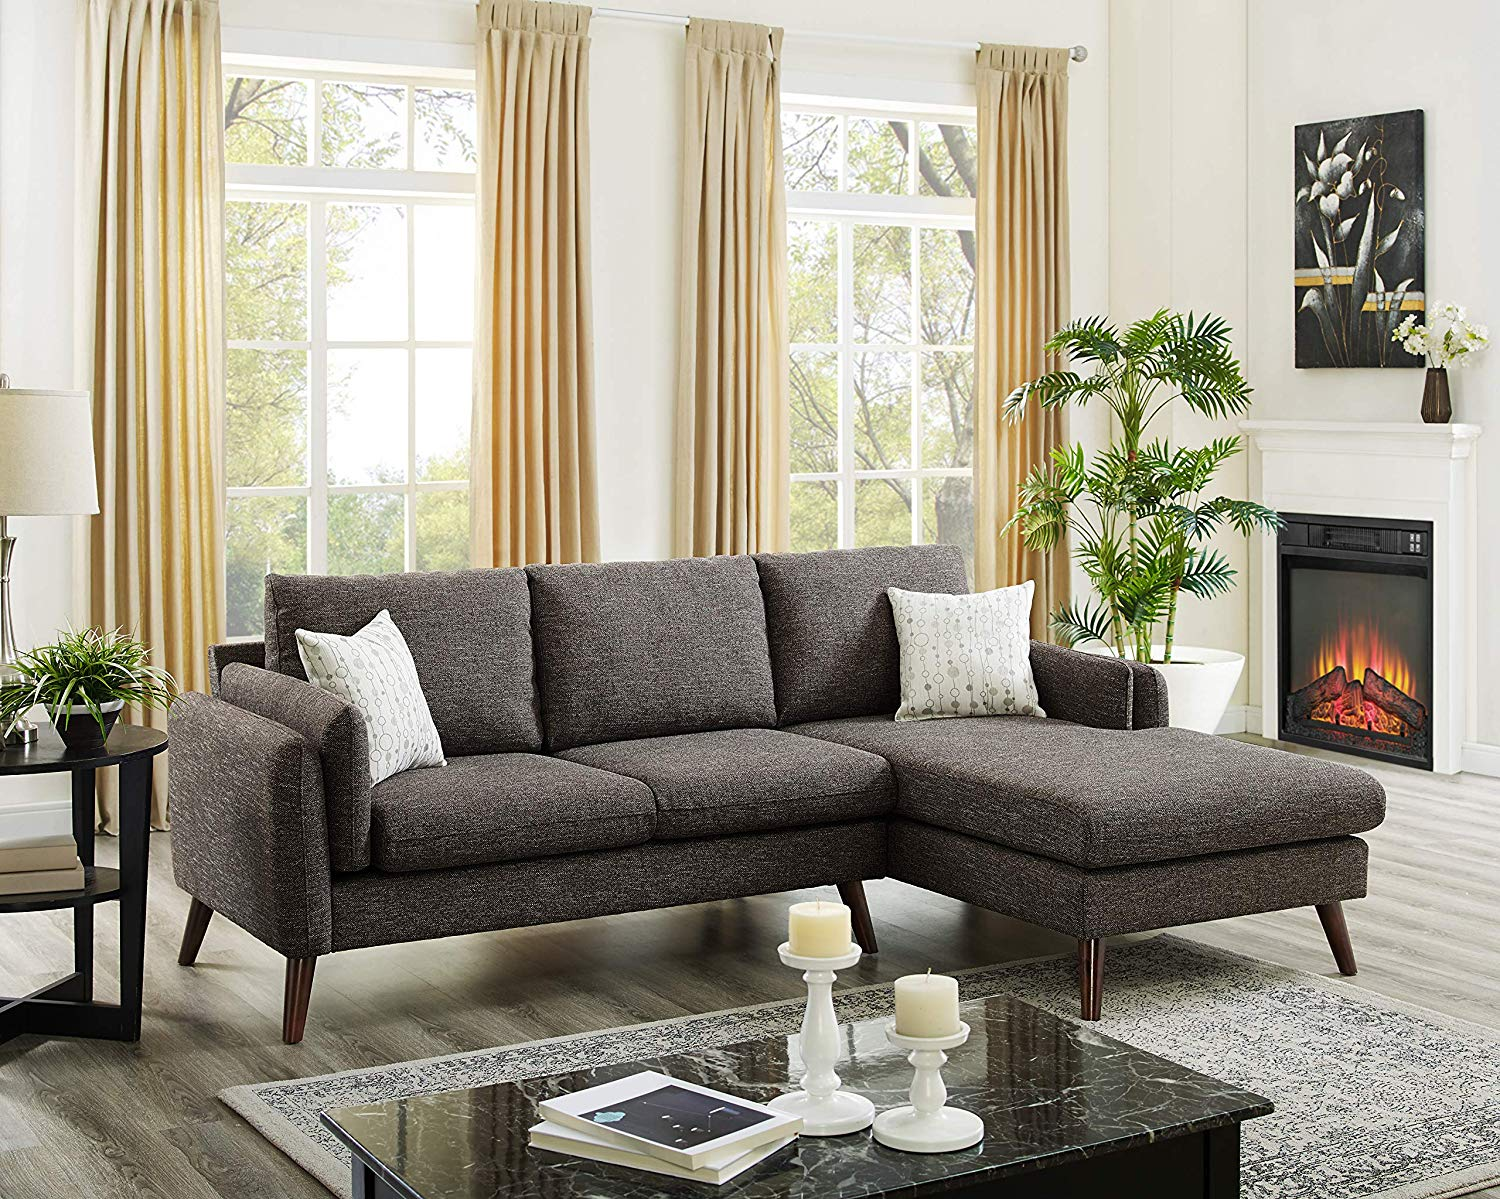 Dallas Brown Mid-Century Modern Sectional Sofa with Chaise Lounge in Brown Color Fabric